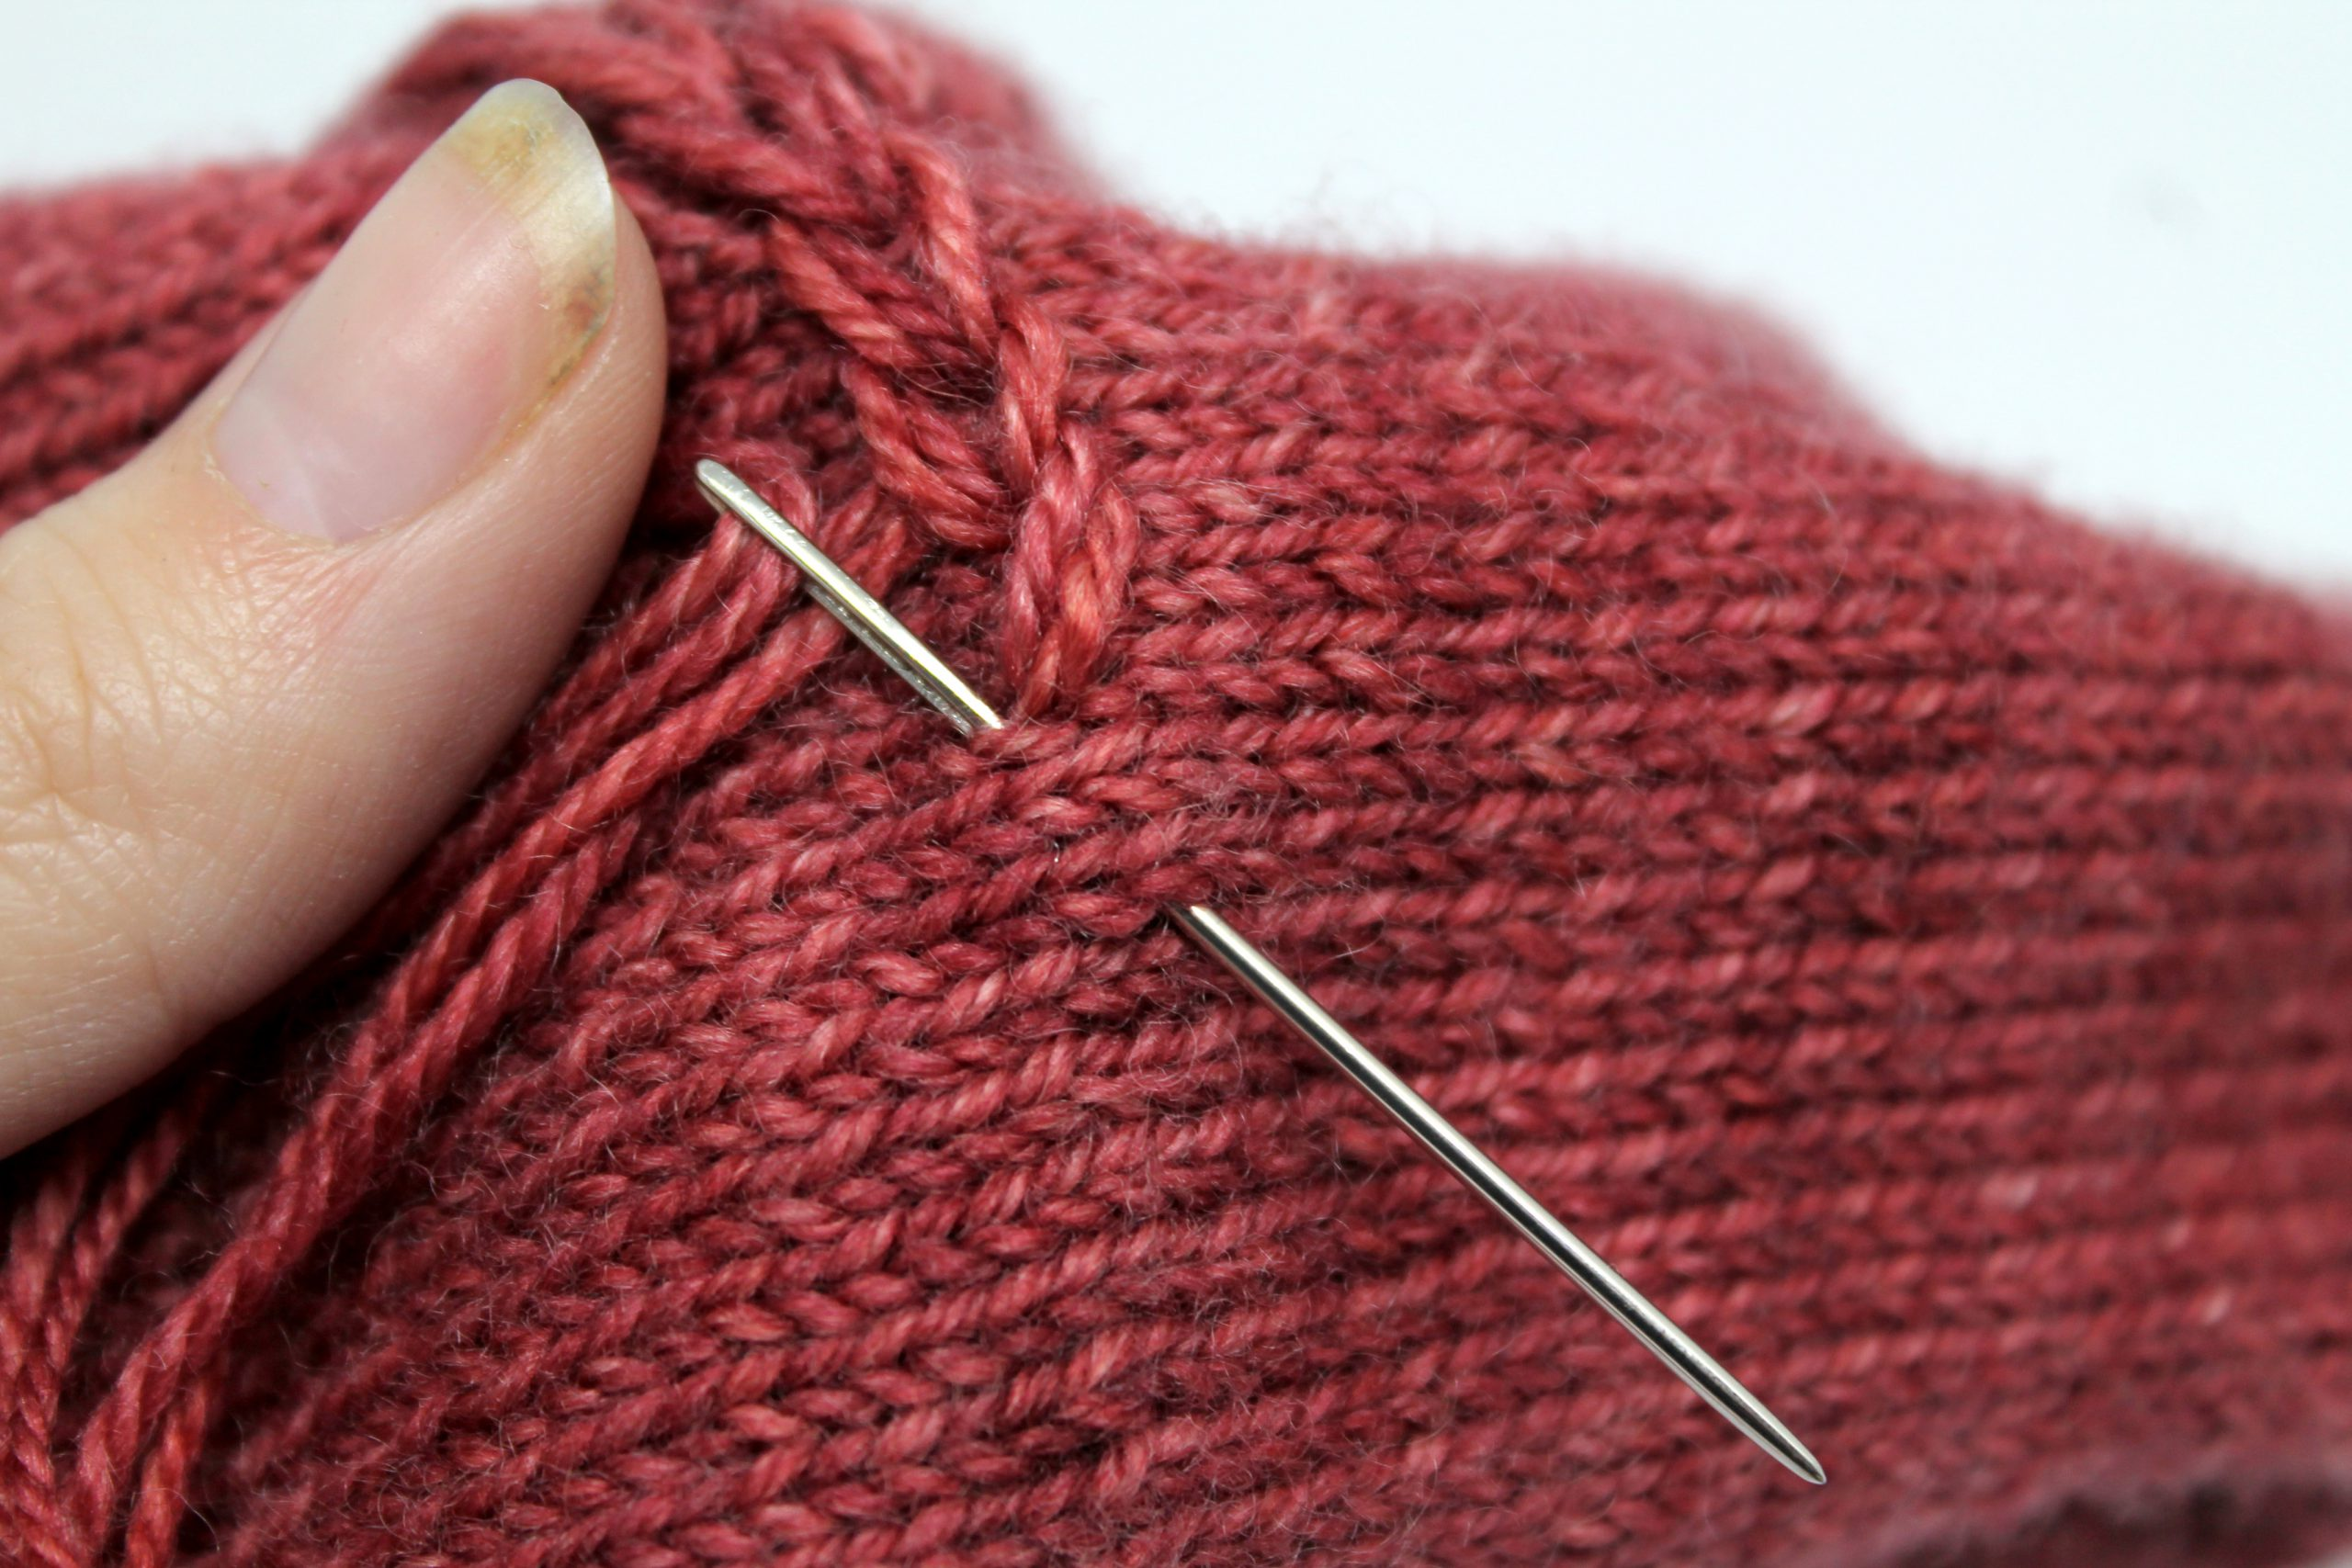 A tapestry needle entering and exiting the fabric of the mitt to finish one chain stitch and start the next